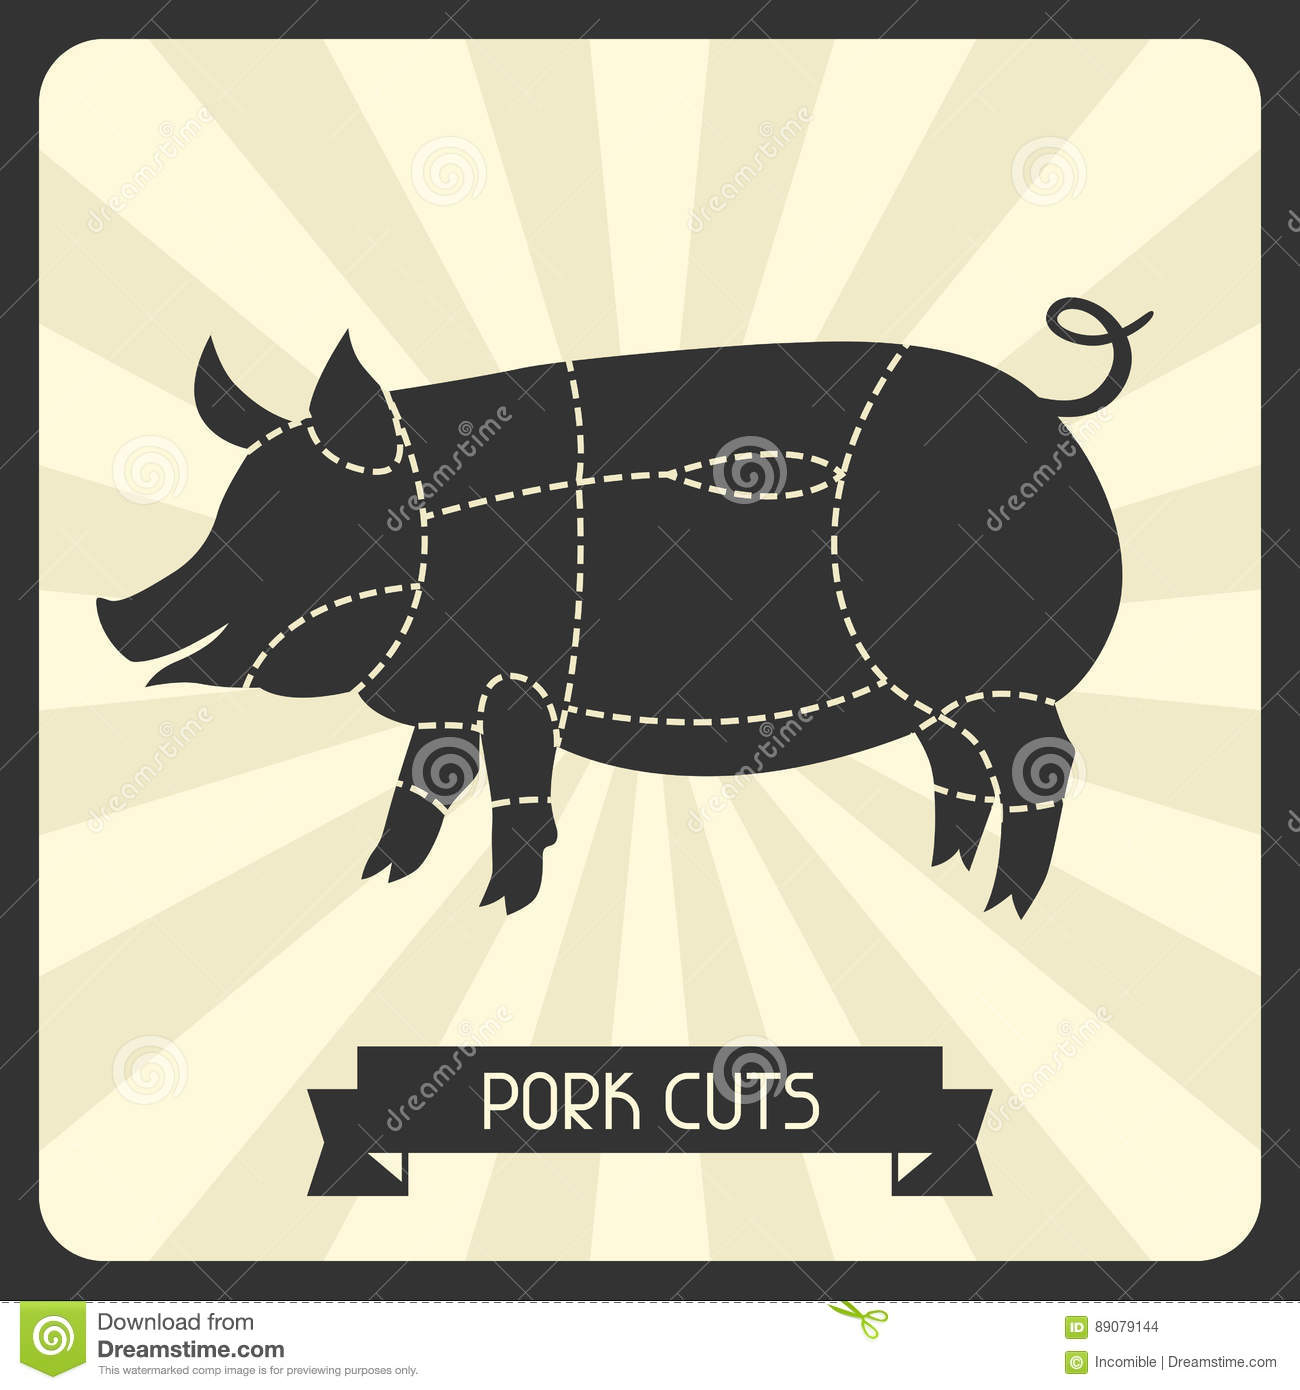 Pork Cuts Butchers Cheme Cutting Meat Illustration Stock Vector Pig Cut Diagram